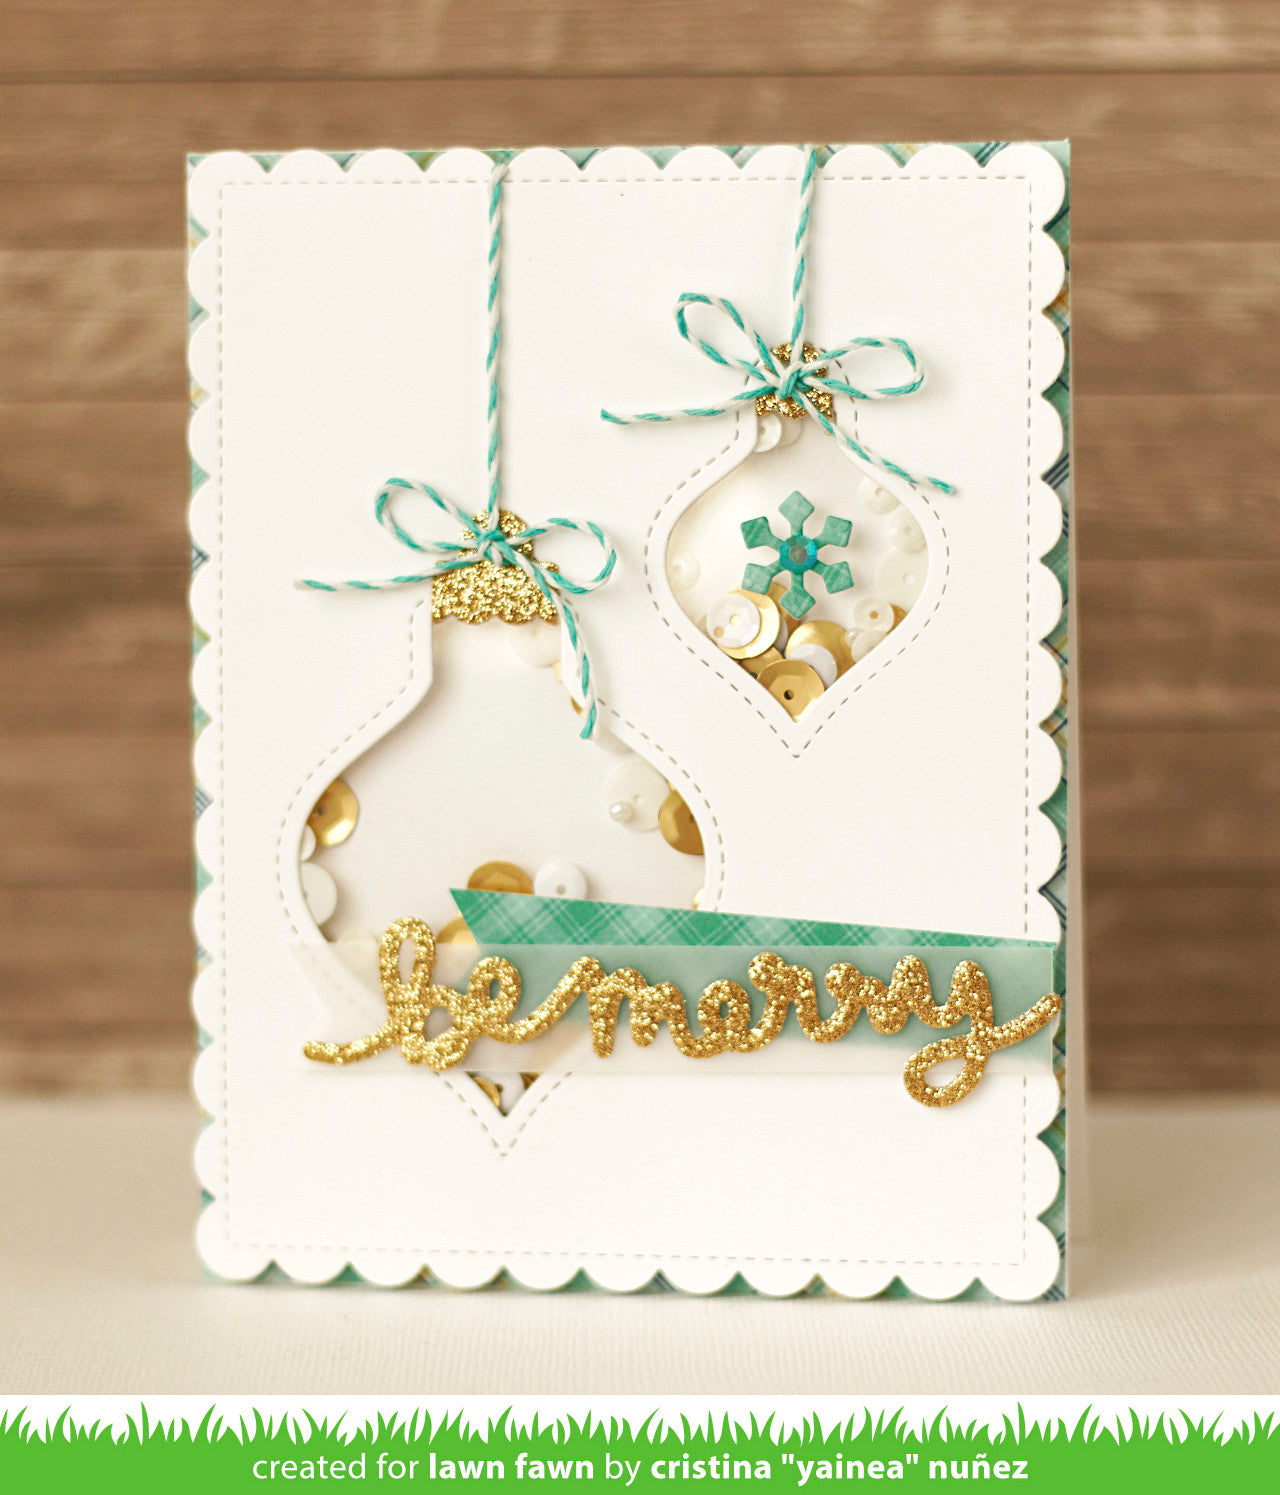 Stitched Ornaments Lawn Fawn